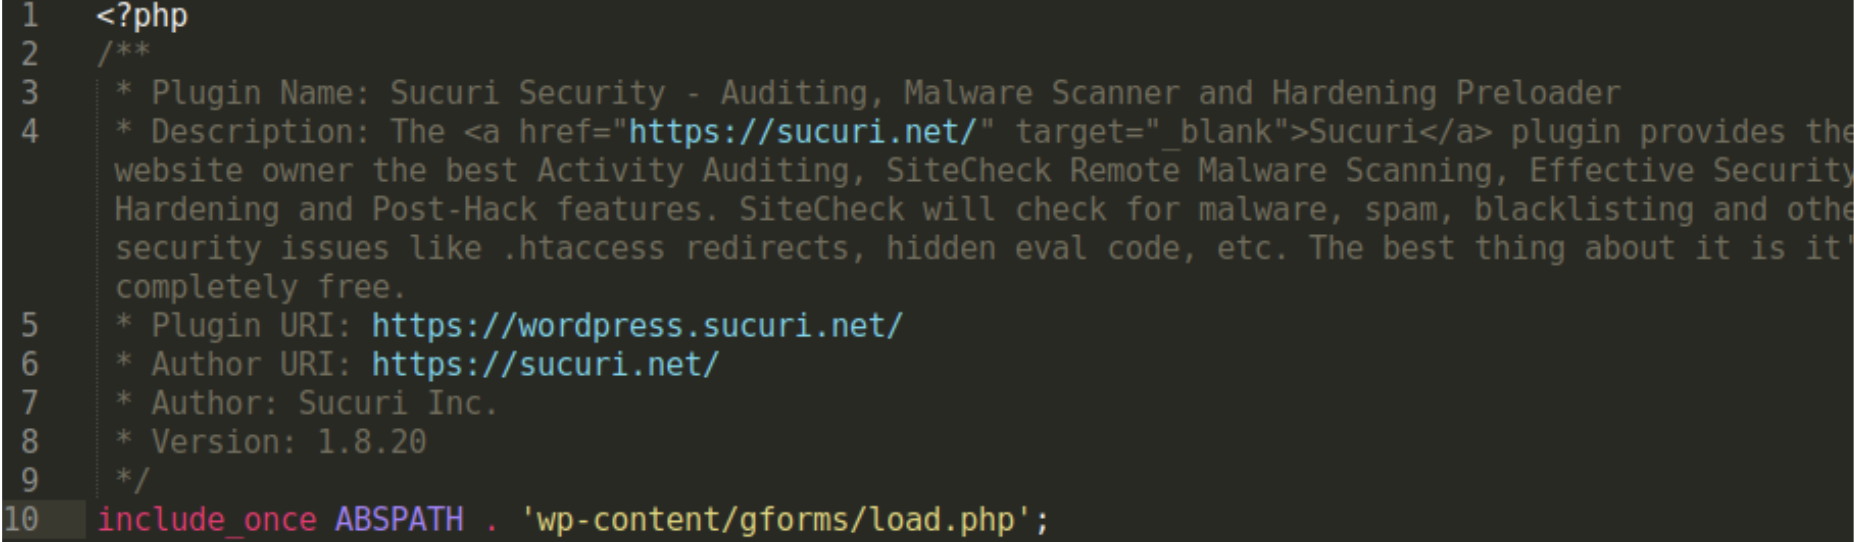 0-sucuri-boot.php: We do not use a file with such a name in our WordPress plugin